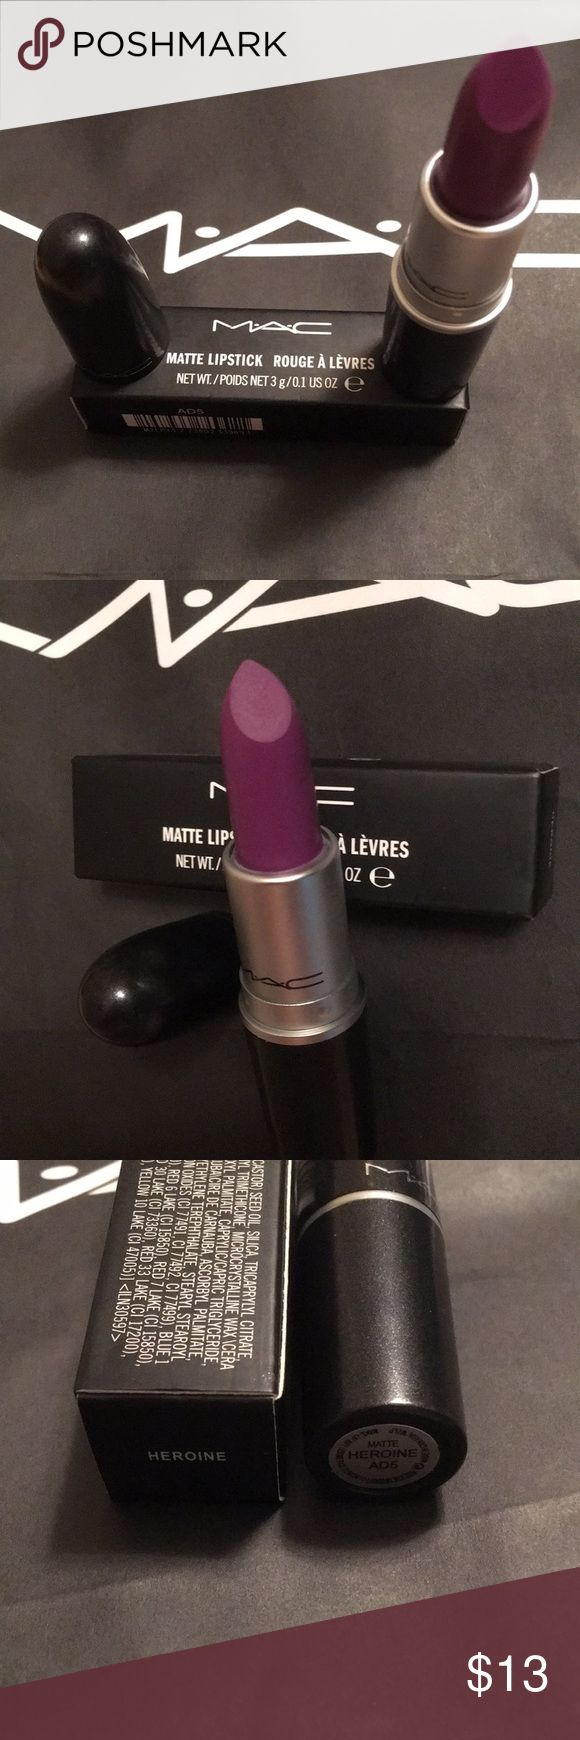 💄MAC Heroine lipstick 💄 Brand new still in box MAC Heroine lipstick 💄💄💄, no cracks no breaks. Has never been used or swatched only opened it for pictures. MAC Cosmetics Makeup Lipstick